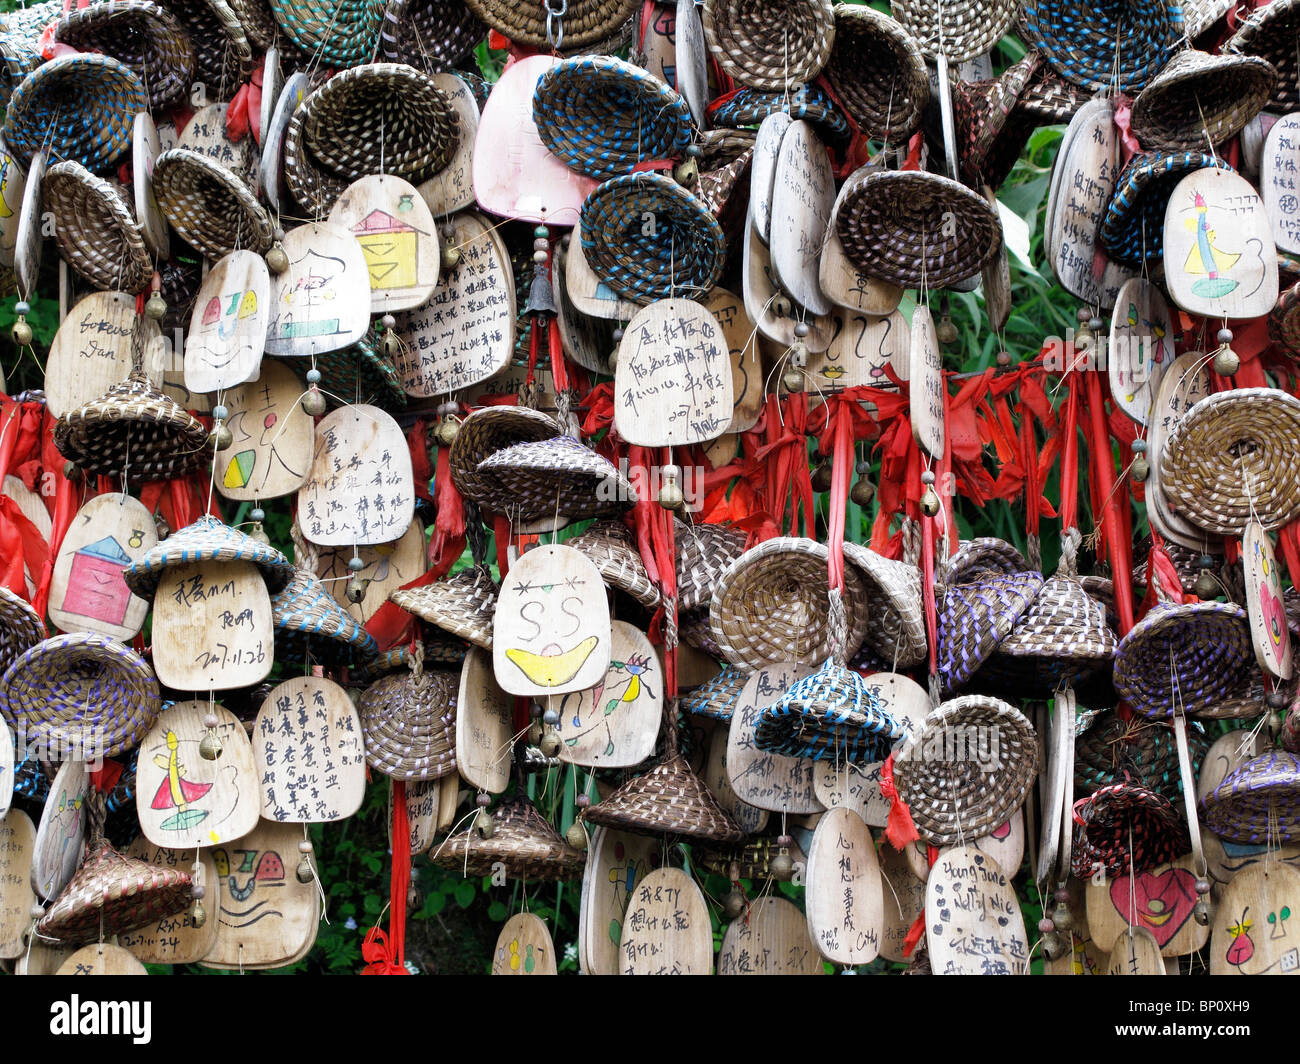 China, Yunnan province, Lijiang, wish bells - Stock Image